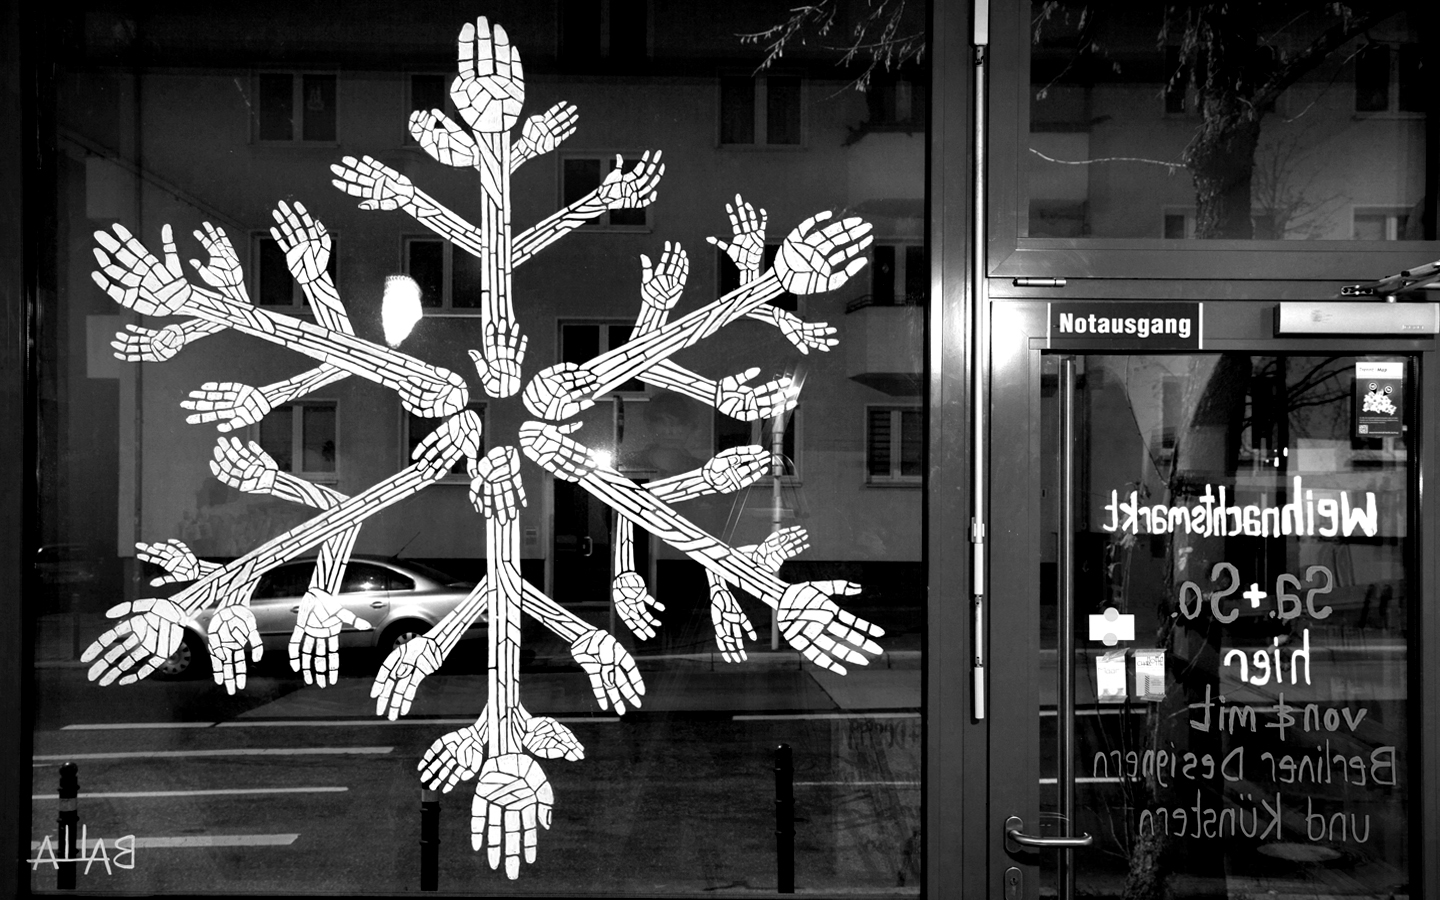 Always standing out, Berlin has a different way to decorate the winter window display, as they painted a snowflake composed from many hands.